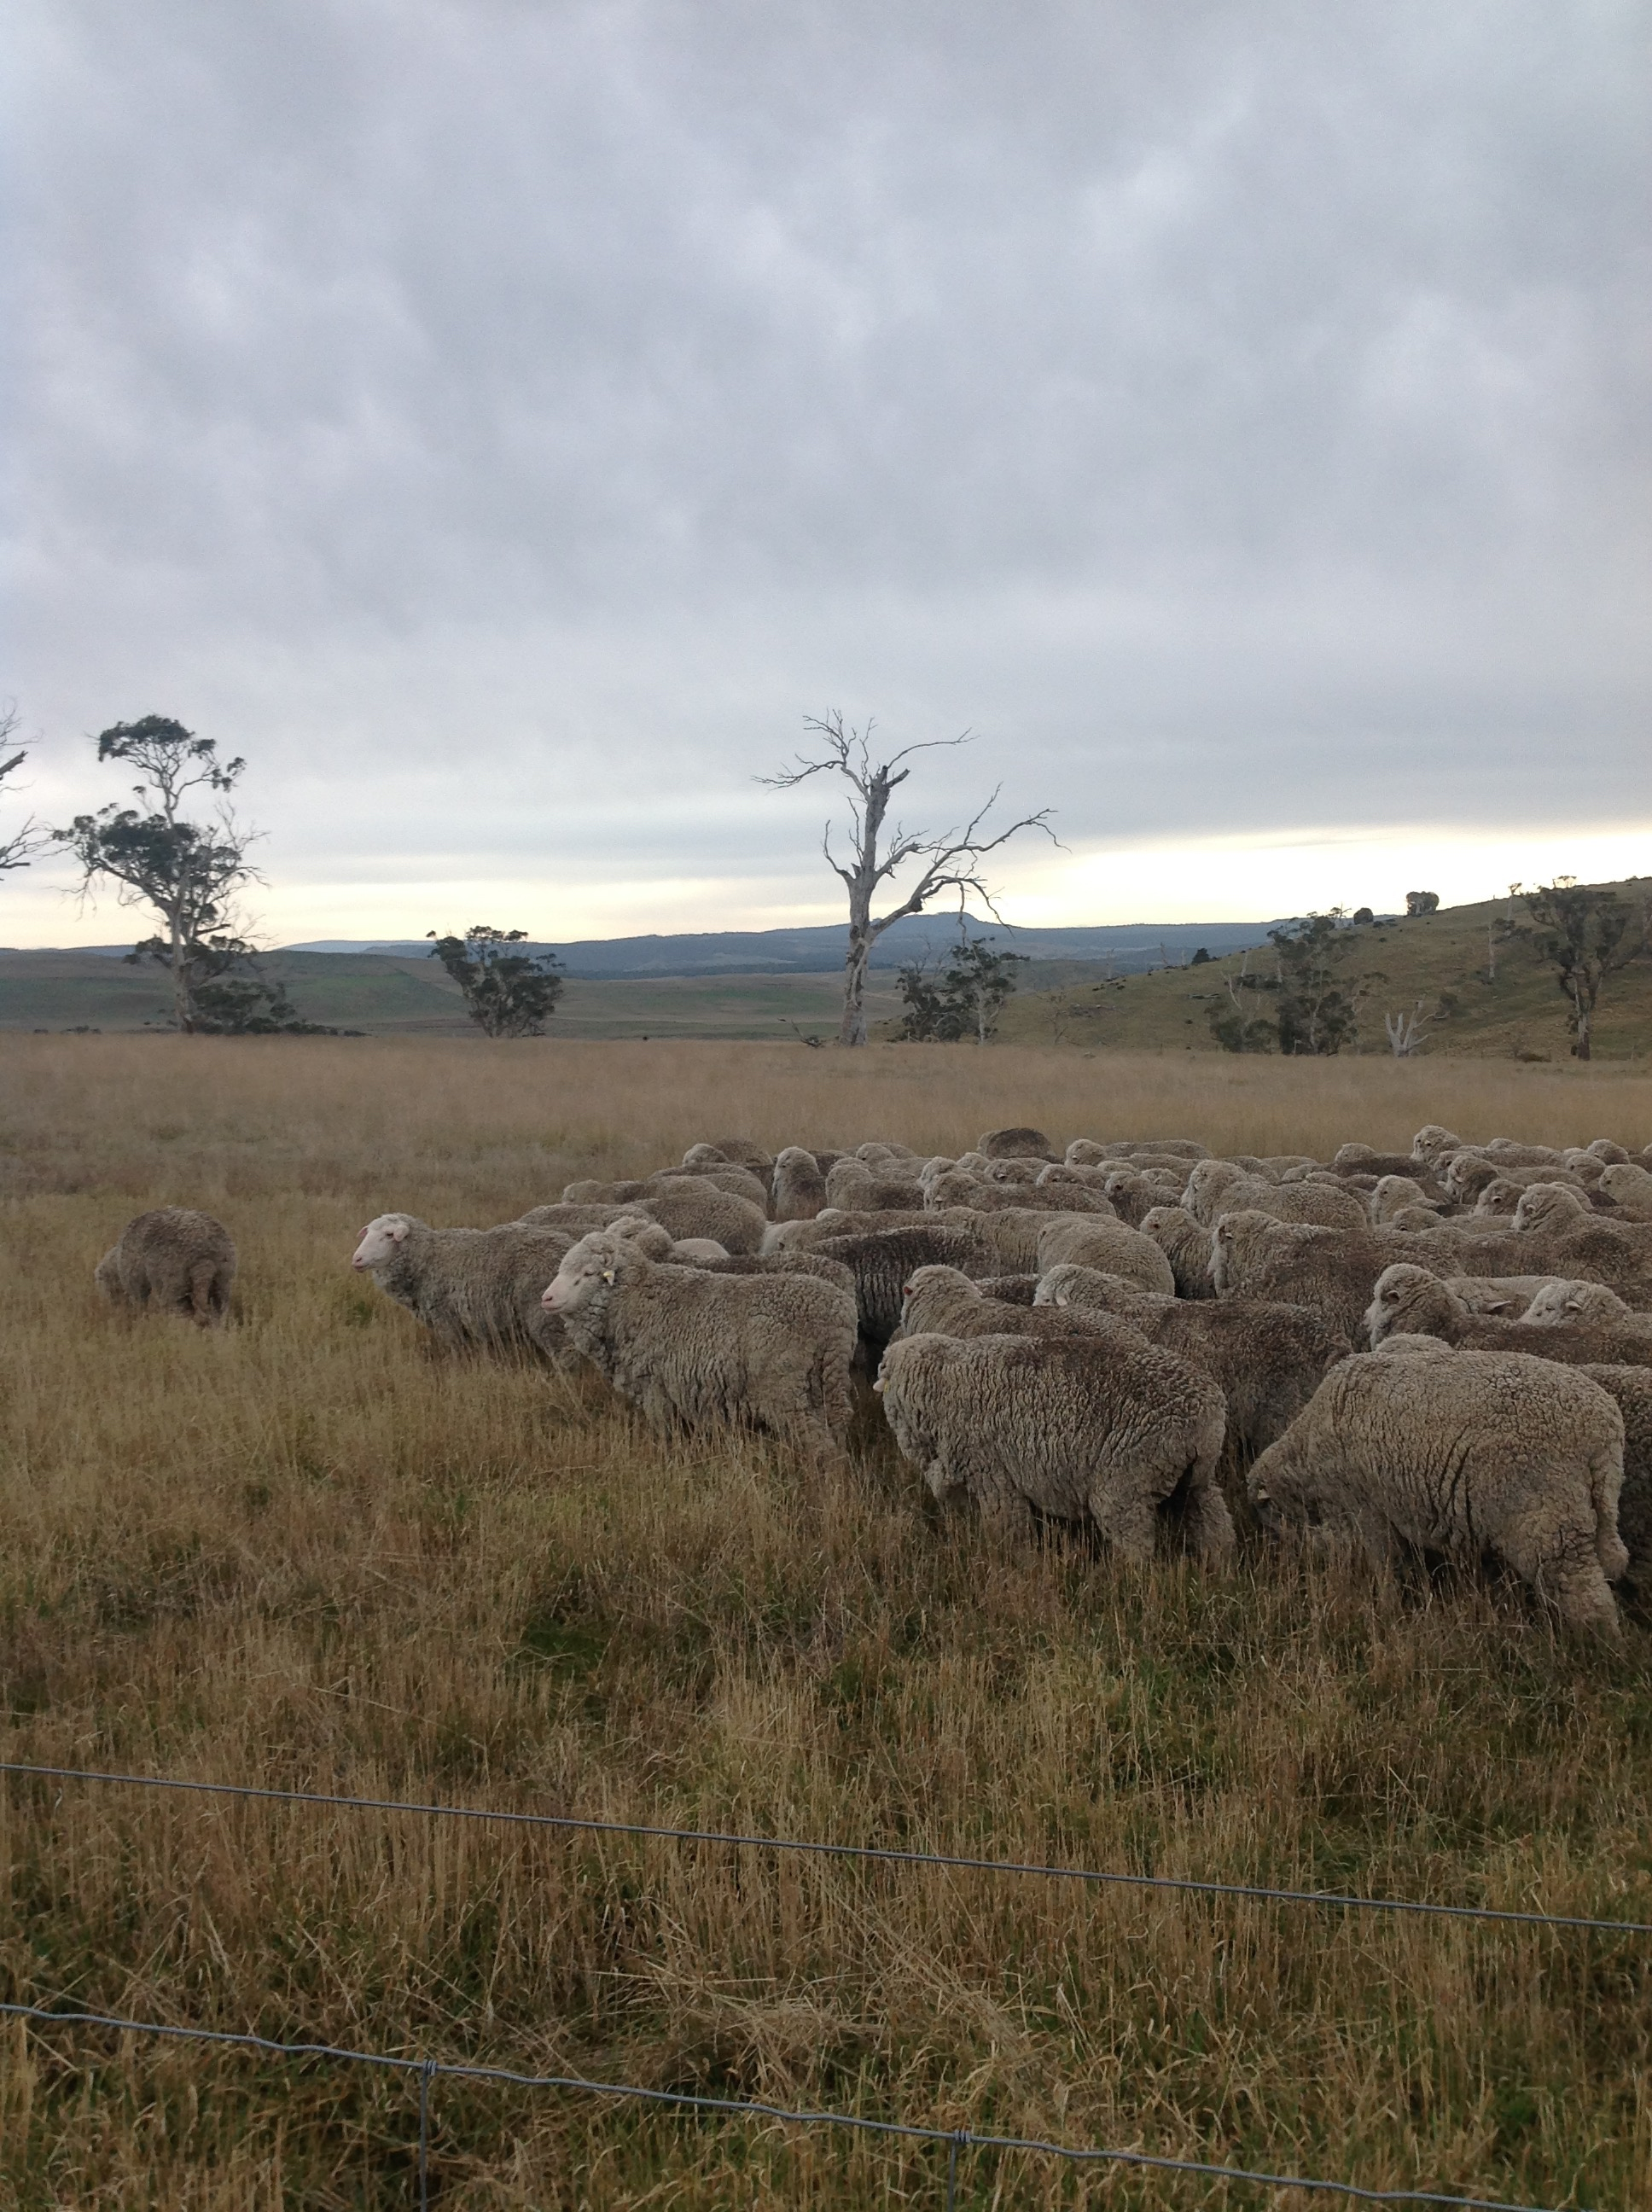 Heading out into the fresh grass of White Gum Wood. Delighted to be out of those blessed yards.